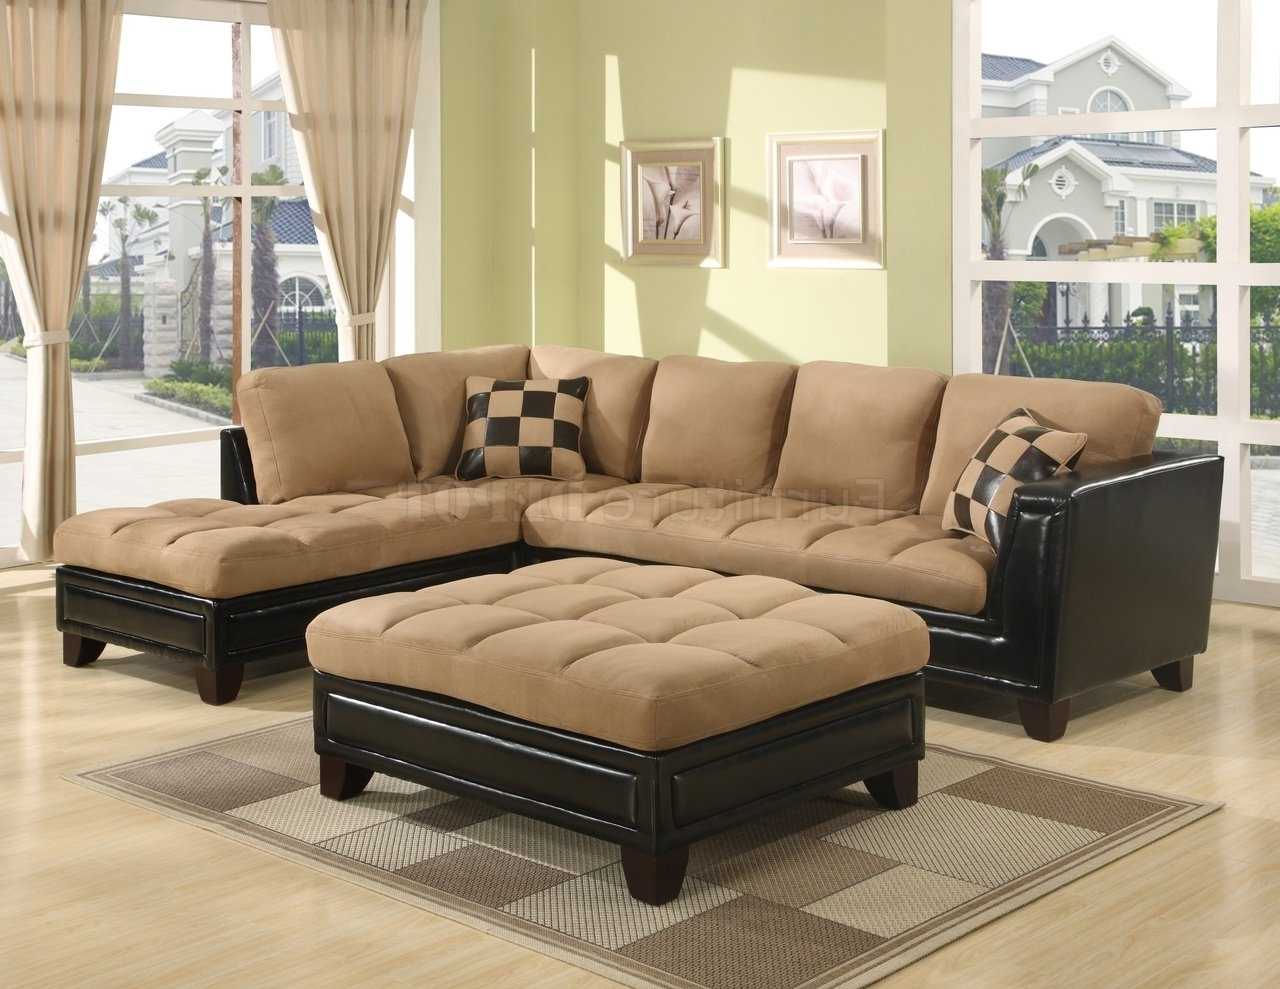 Latest Leather And Suede Sectional Sofas For Leather Suede Sectional Sofa 99 With Leather Suede Sectional Sofa (View 8 of 20)